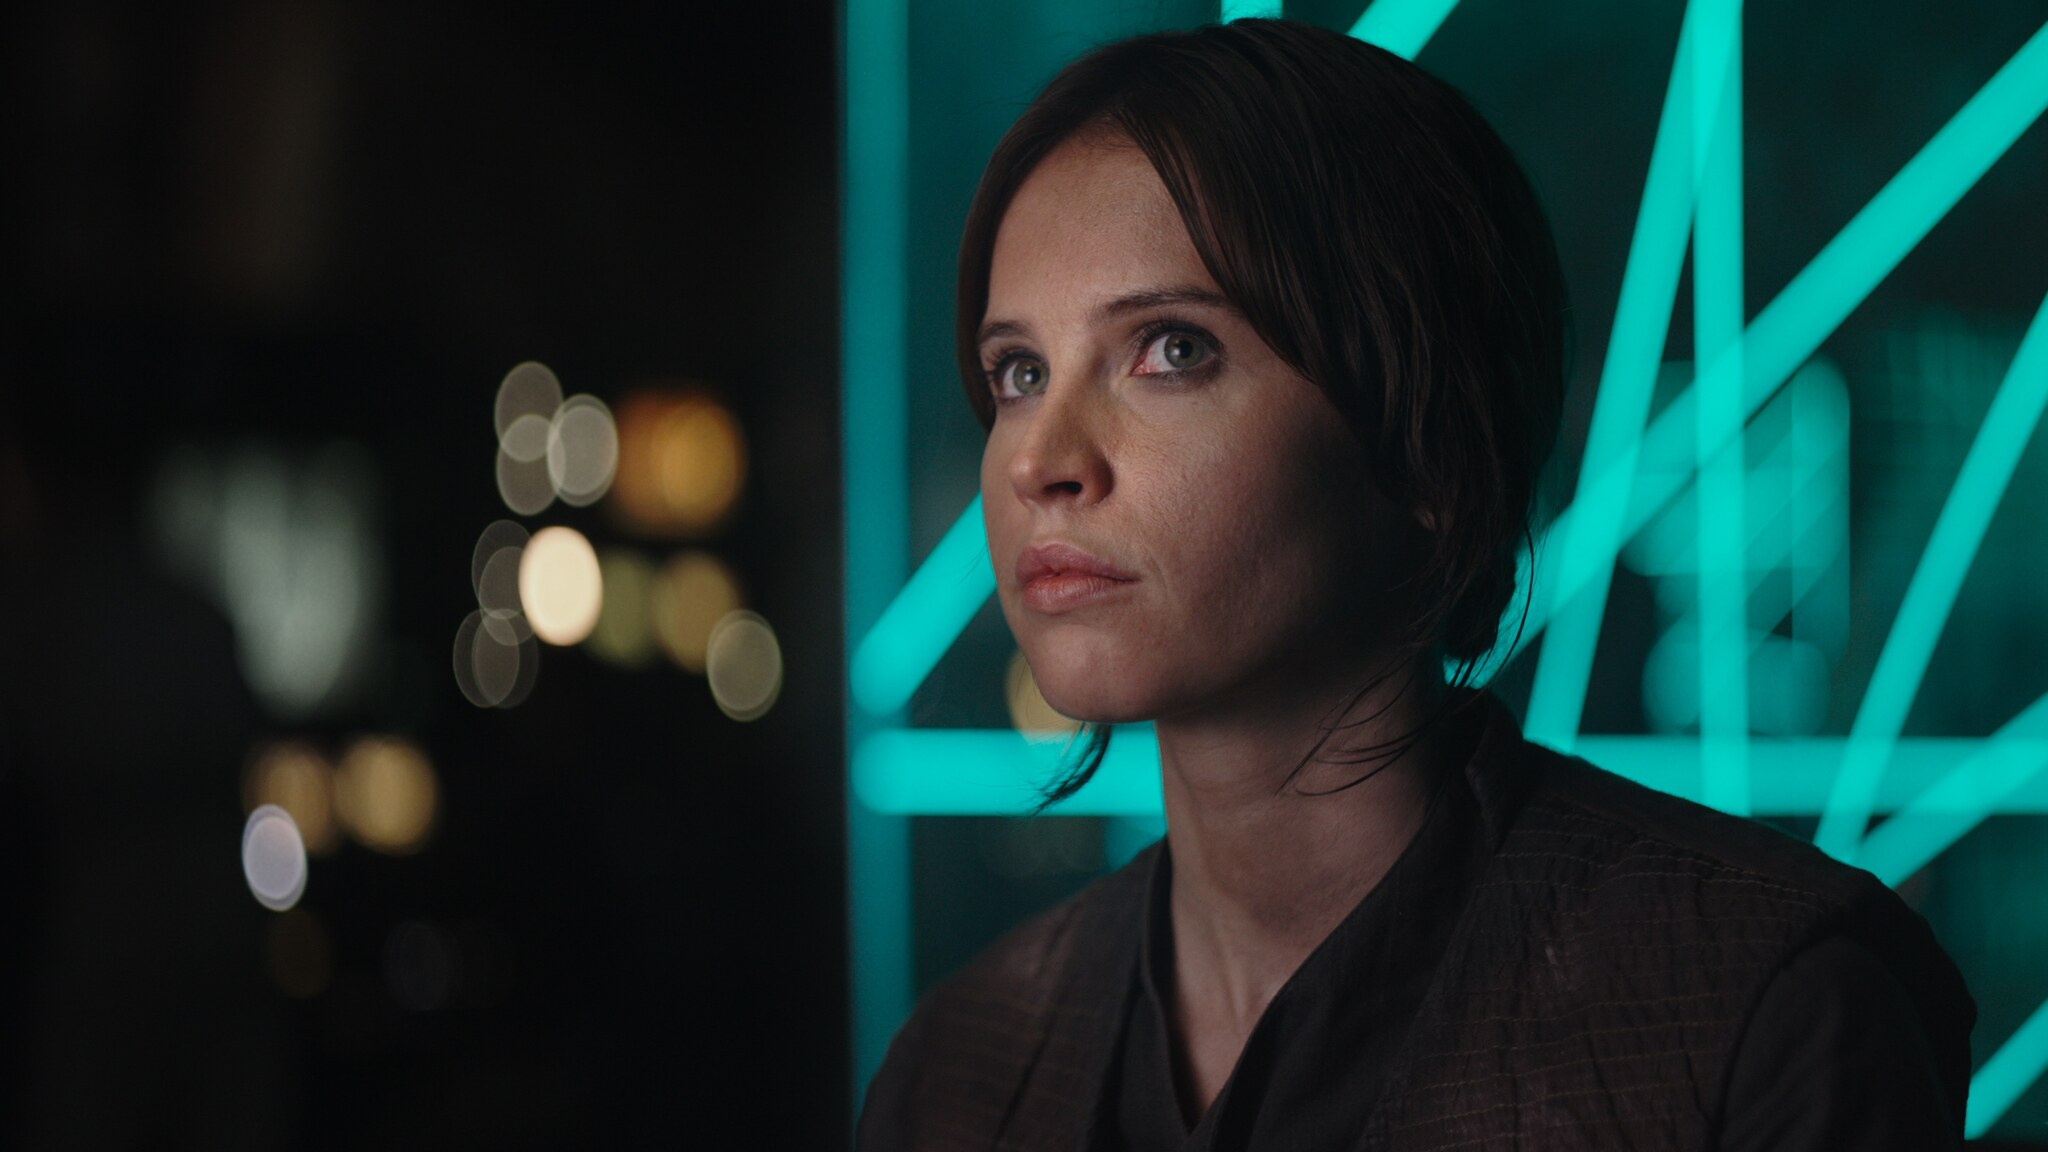 rogue-one-star-wars-hd-4k.jpg